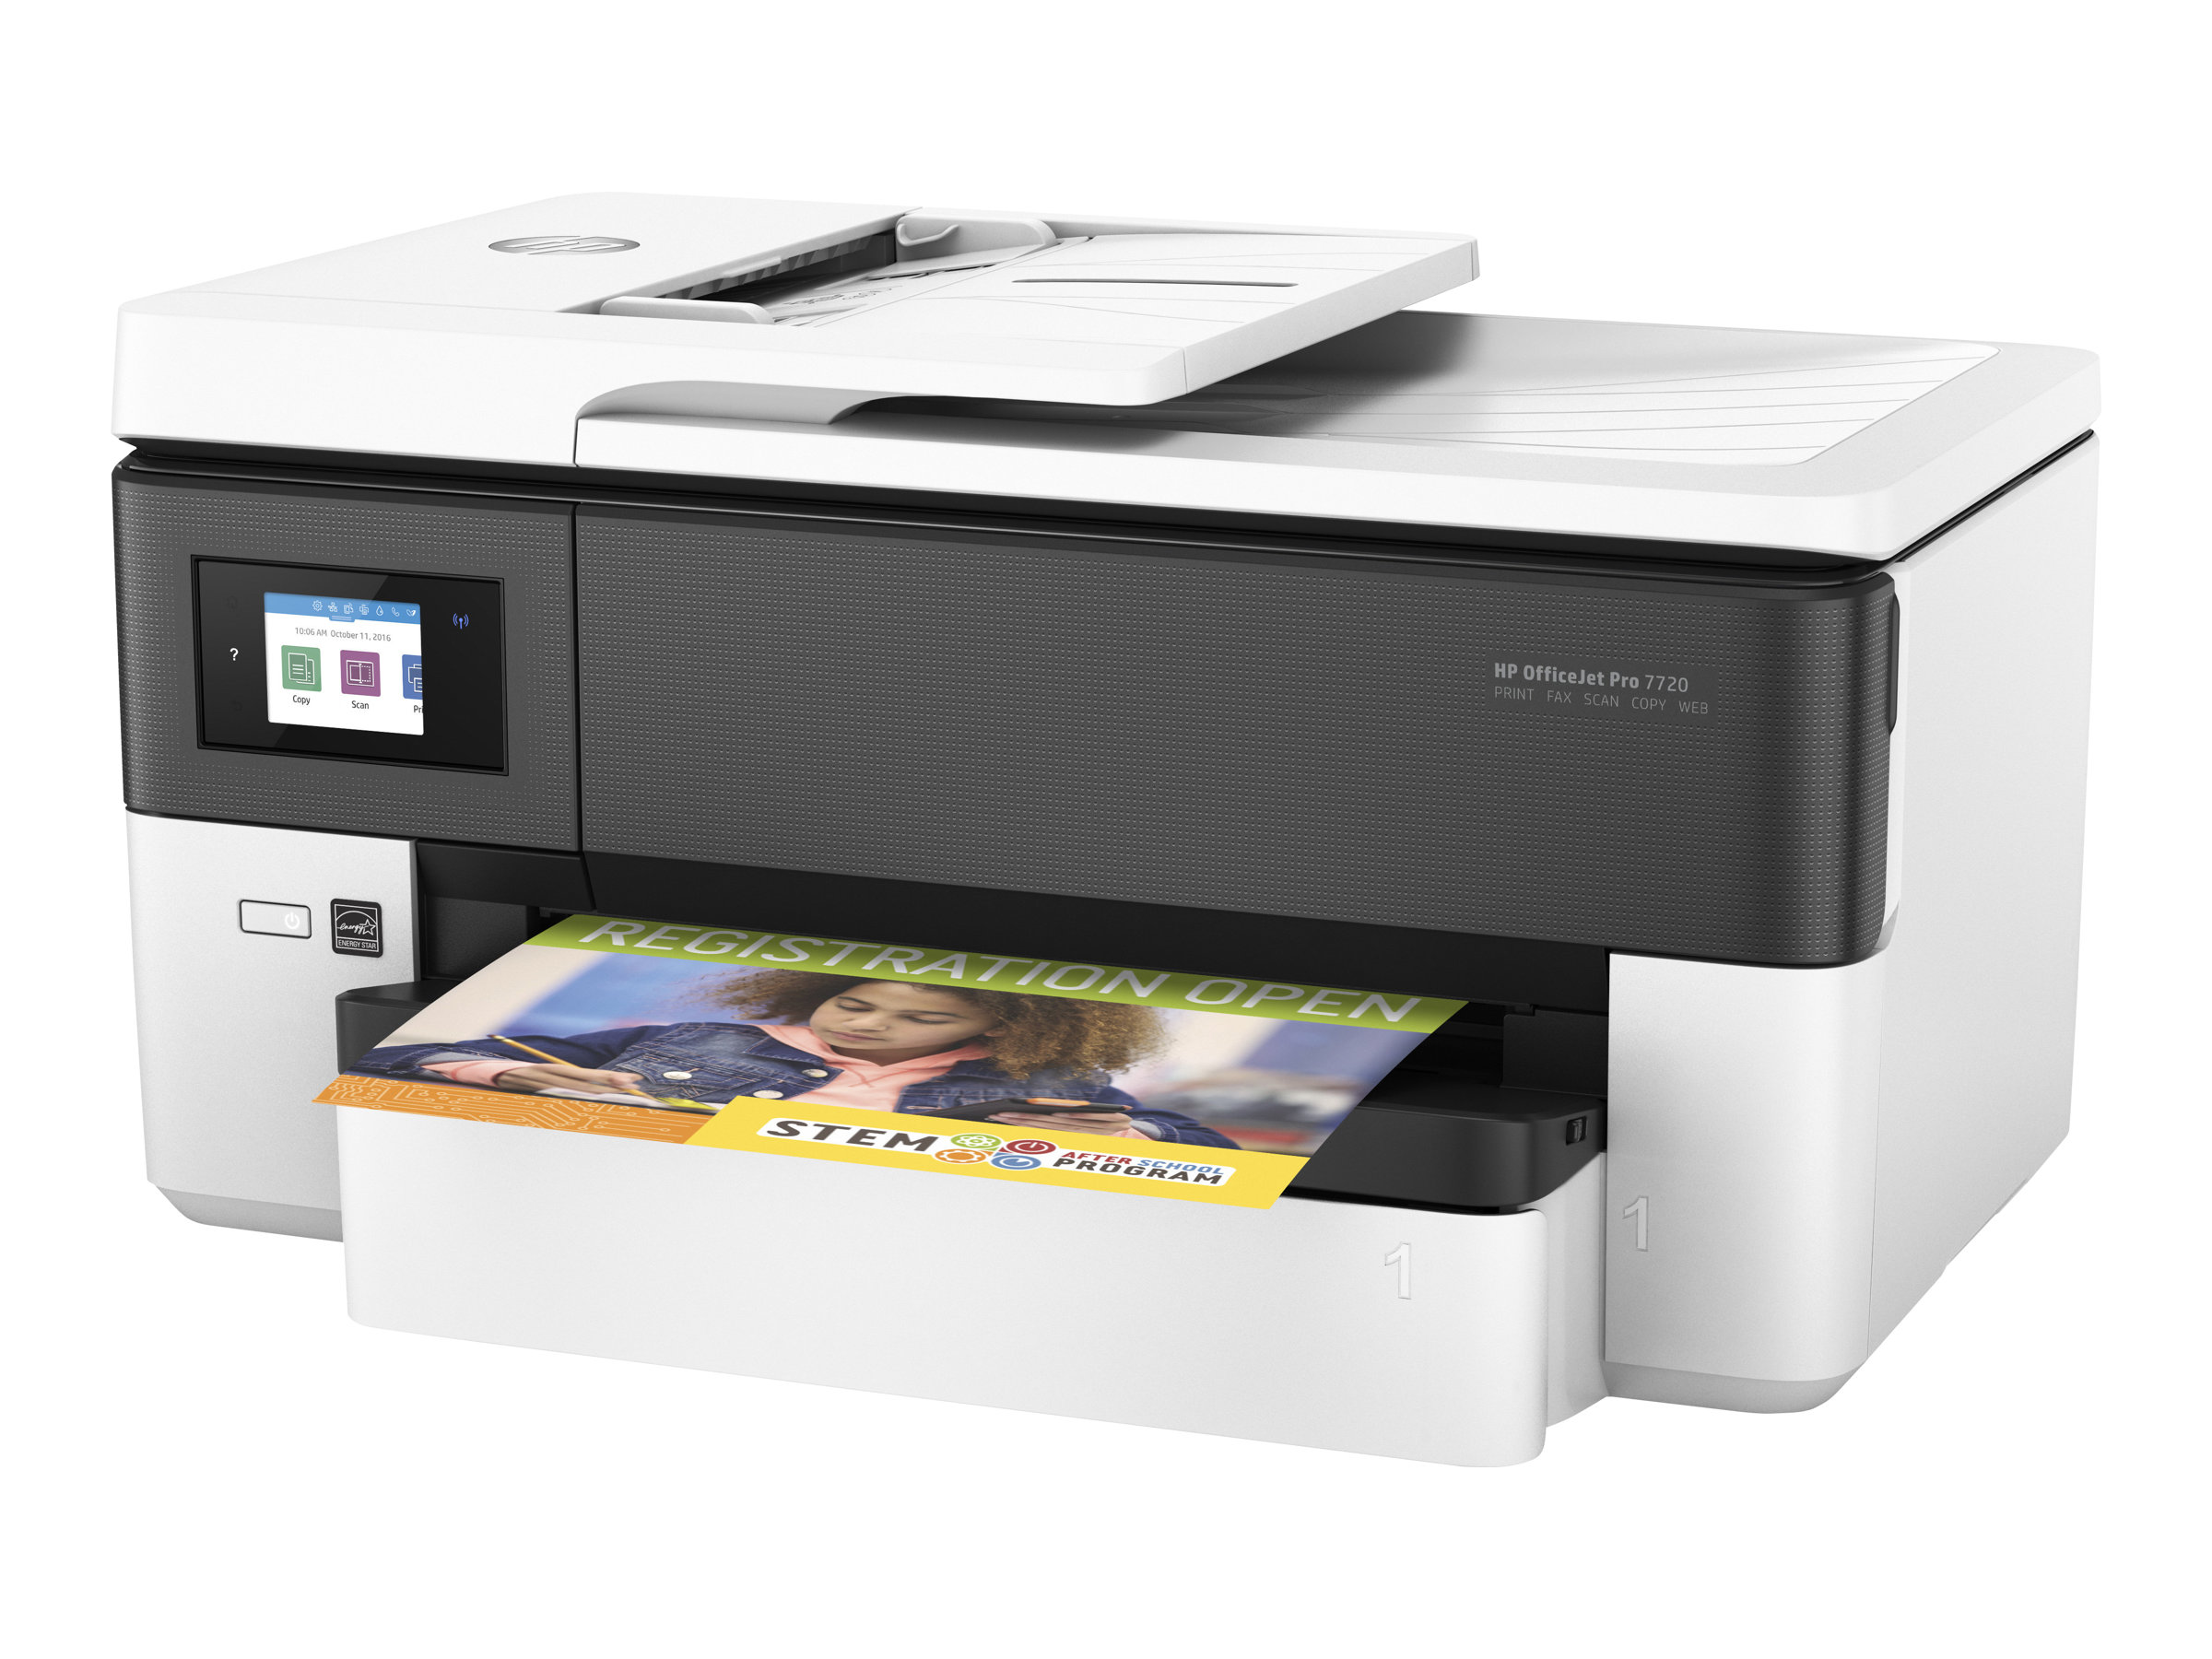 HP Officejet Pro 7720 Wide Format All-in-One - imprimante multifonctions jet d'encre couleur A3 - Wifi